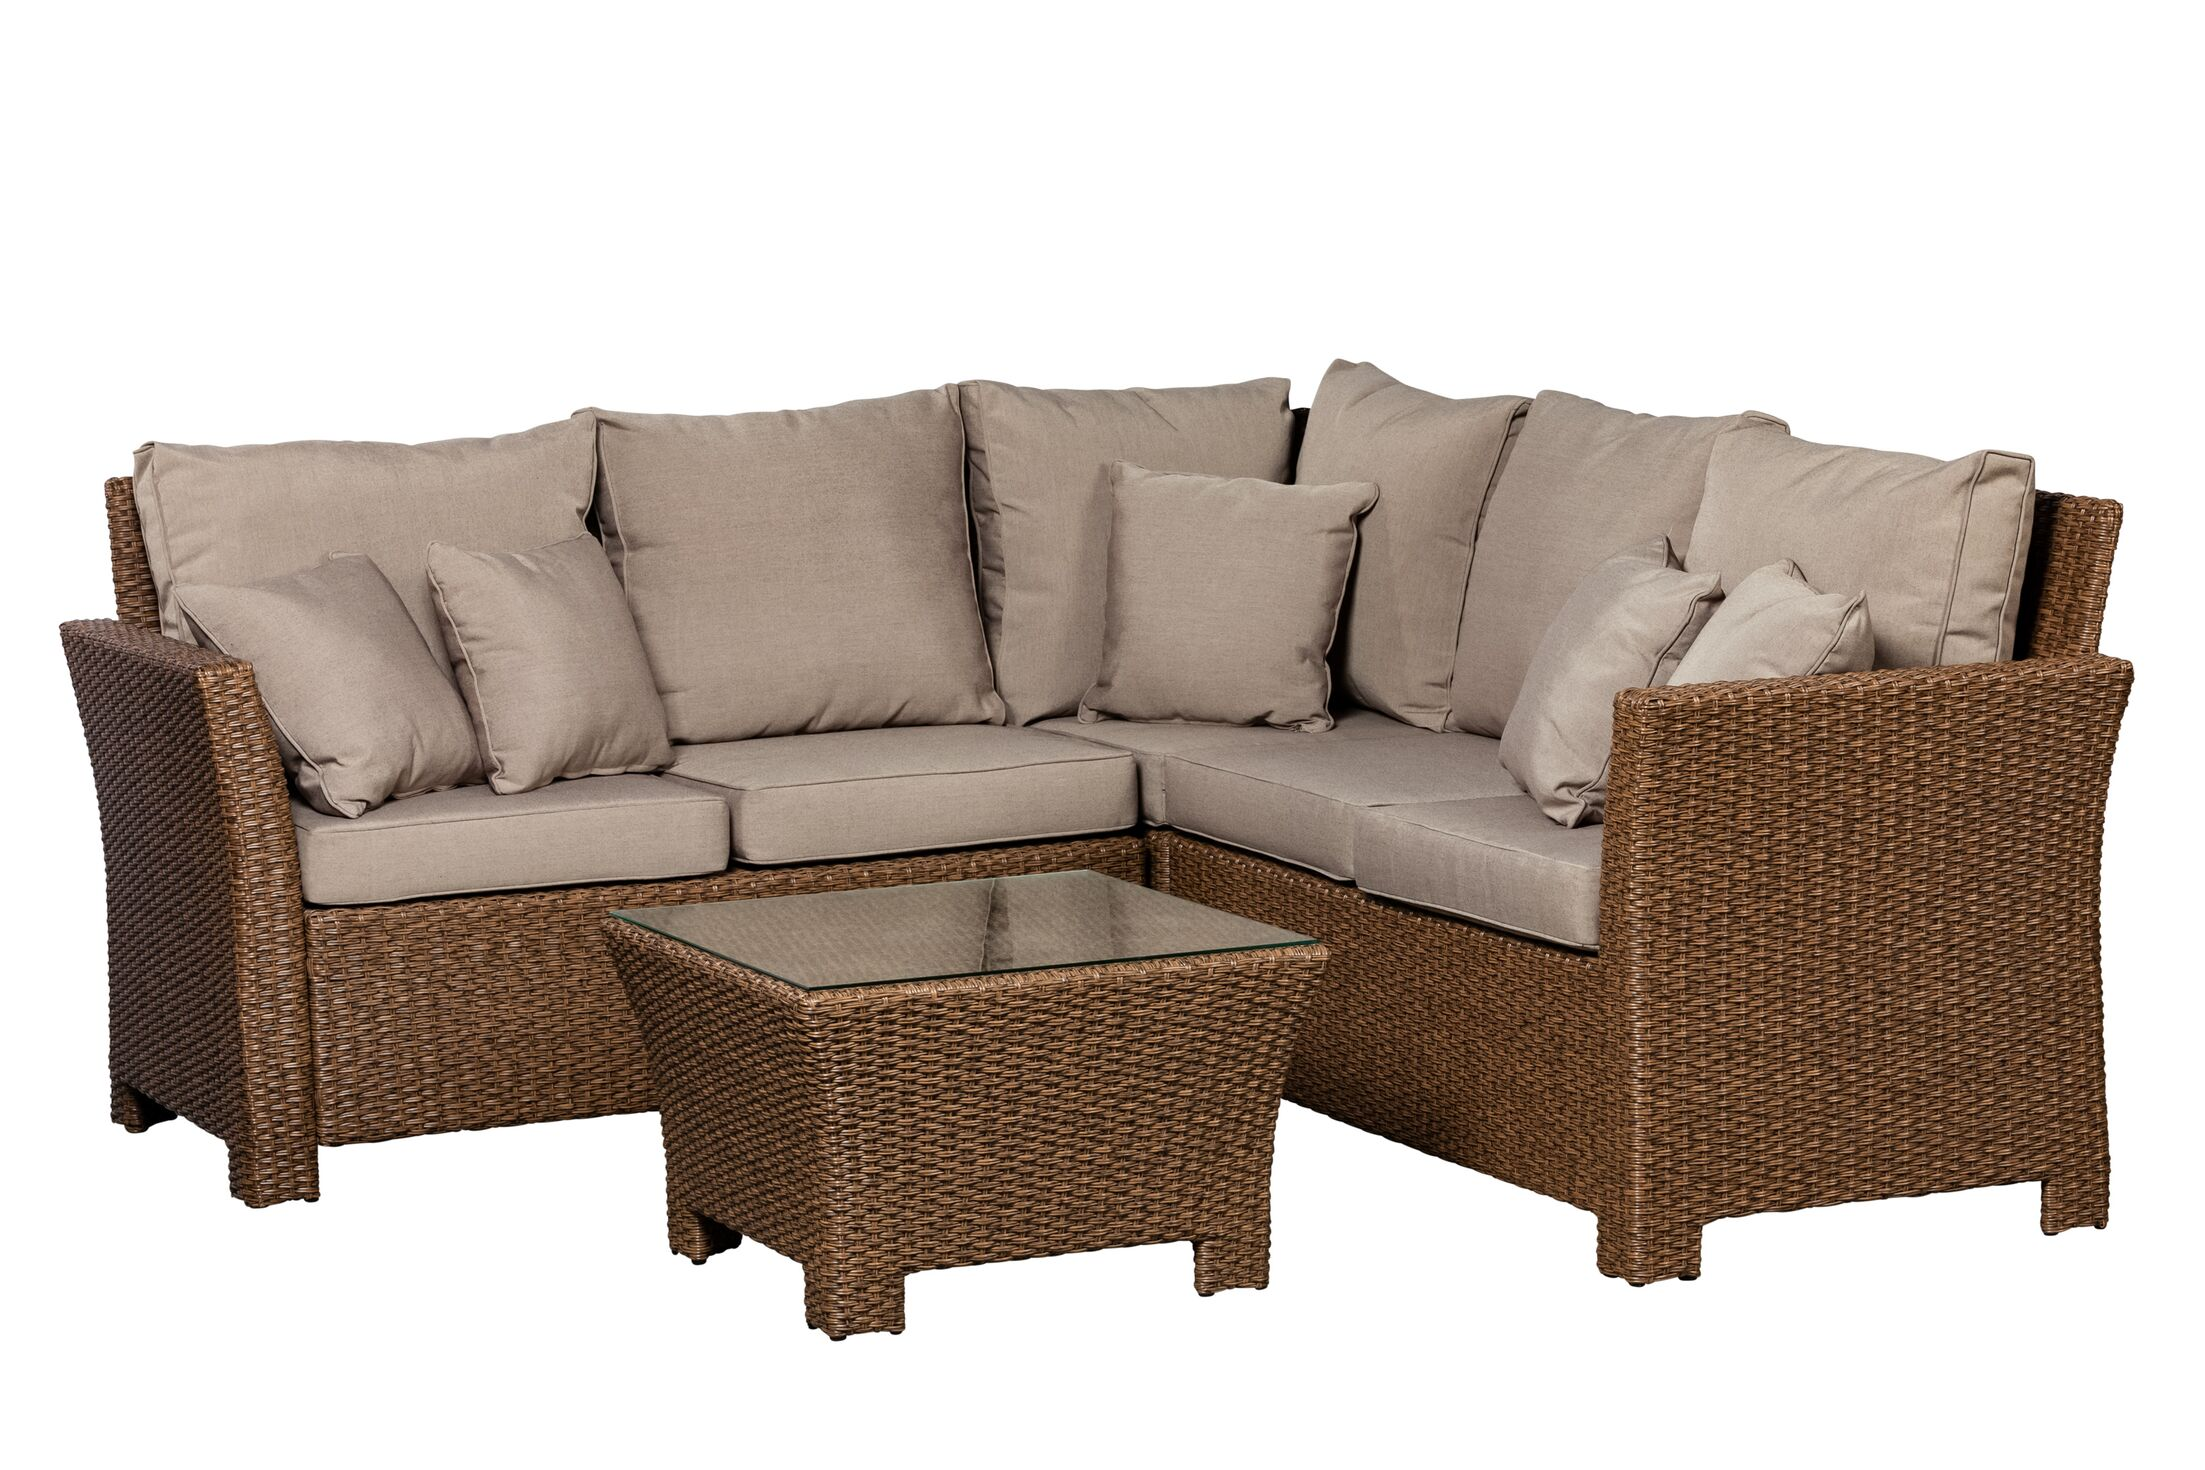 Jarrett 2 Piece Sectional Set with Cushions